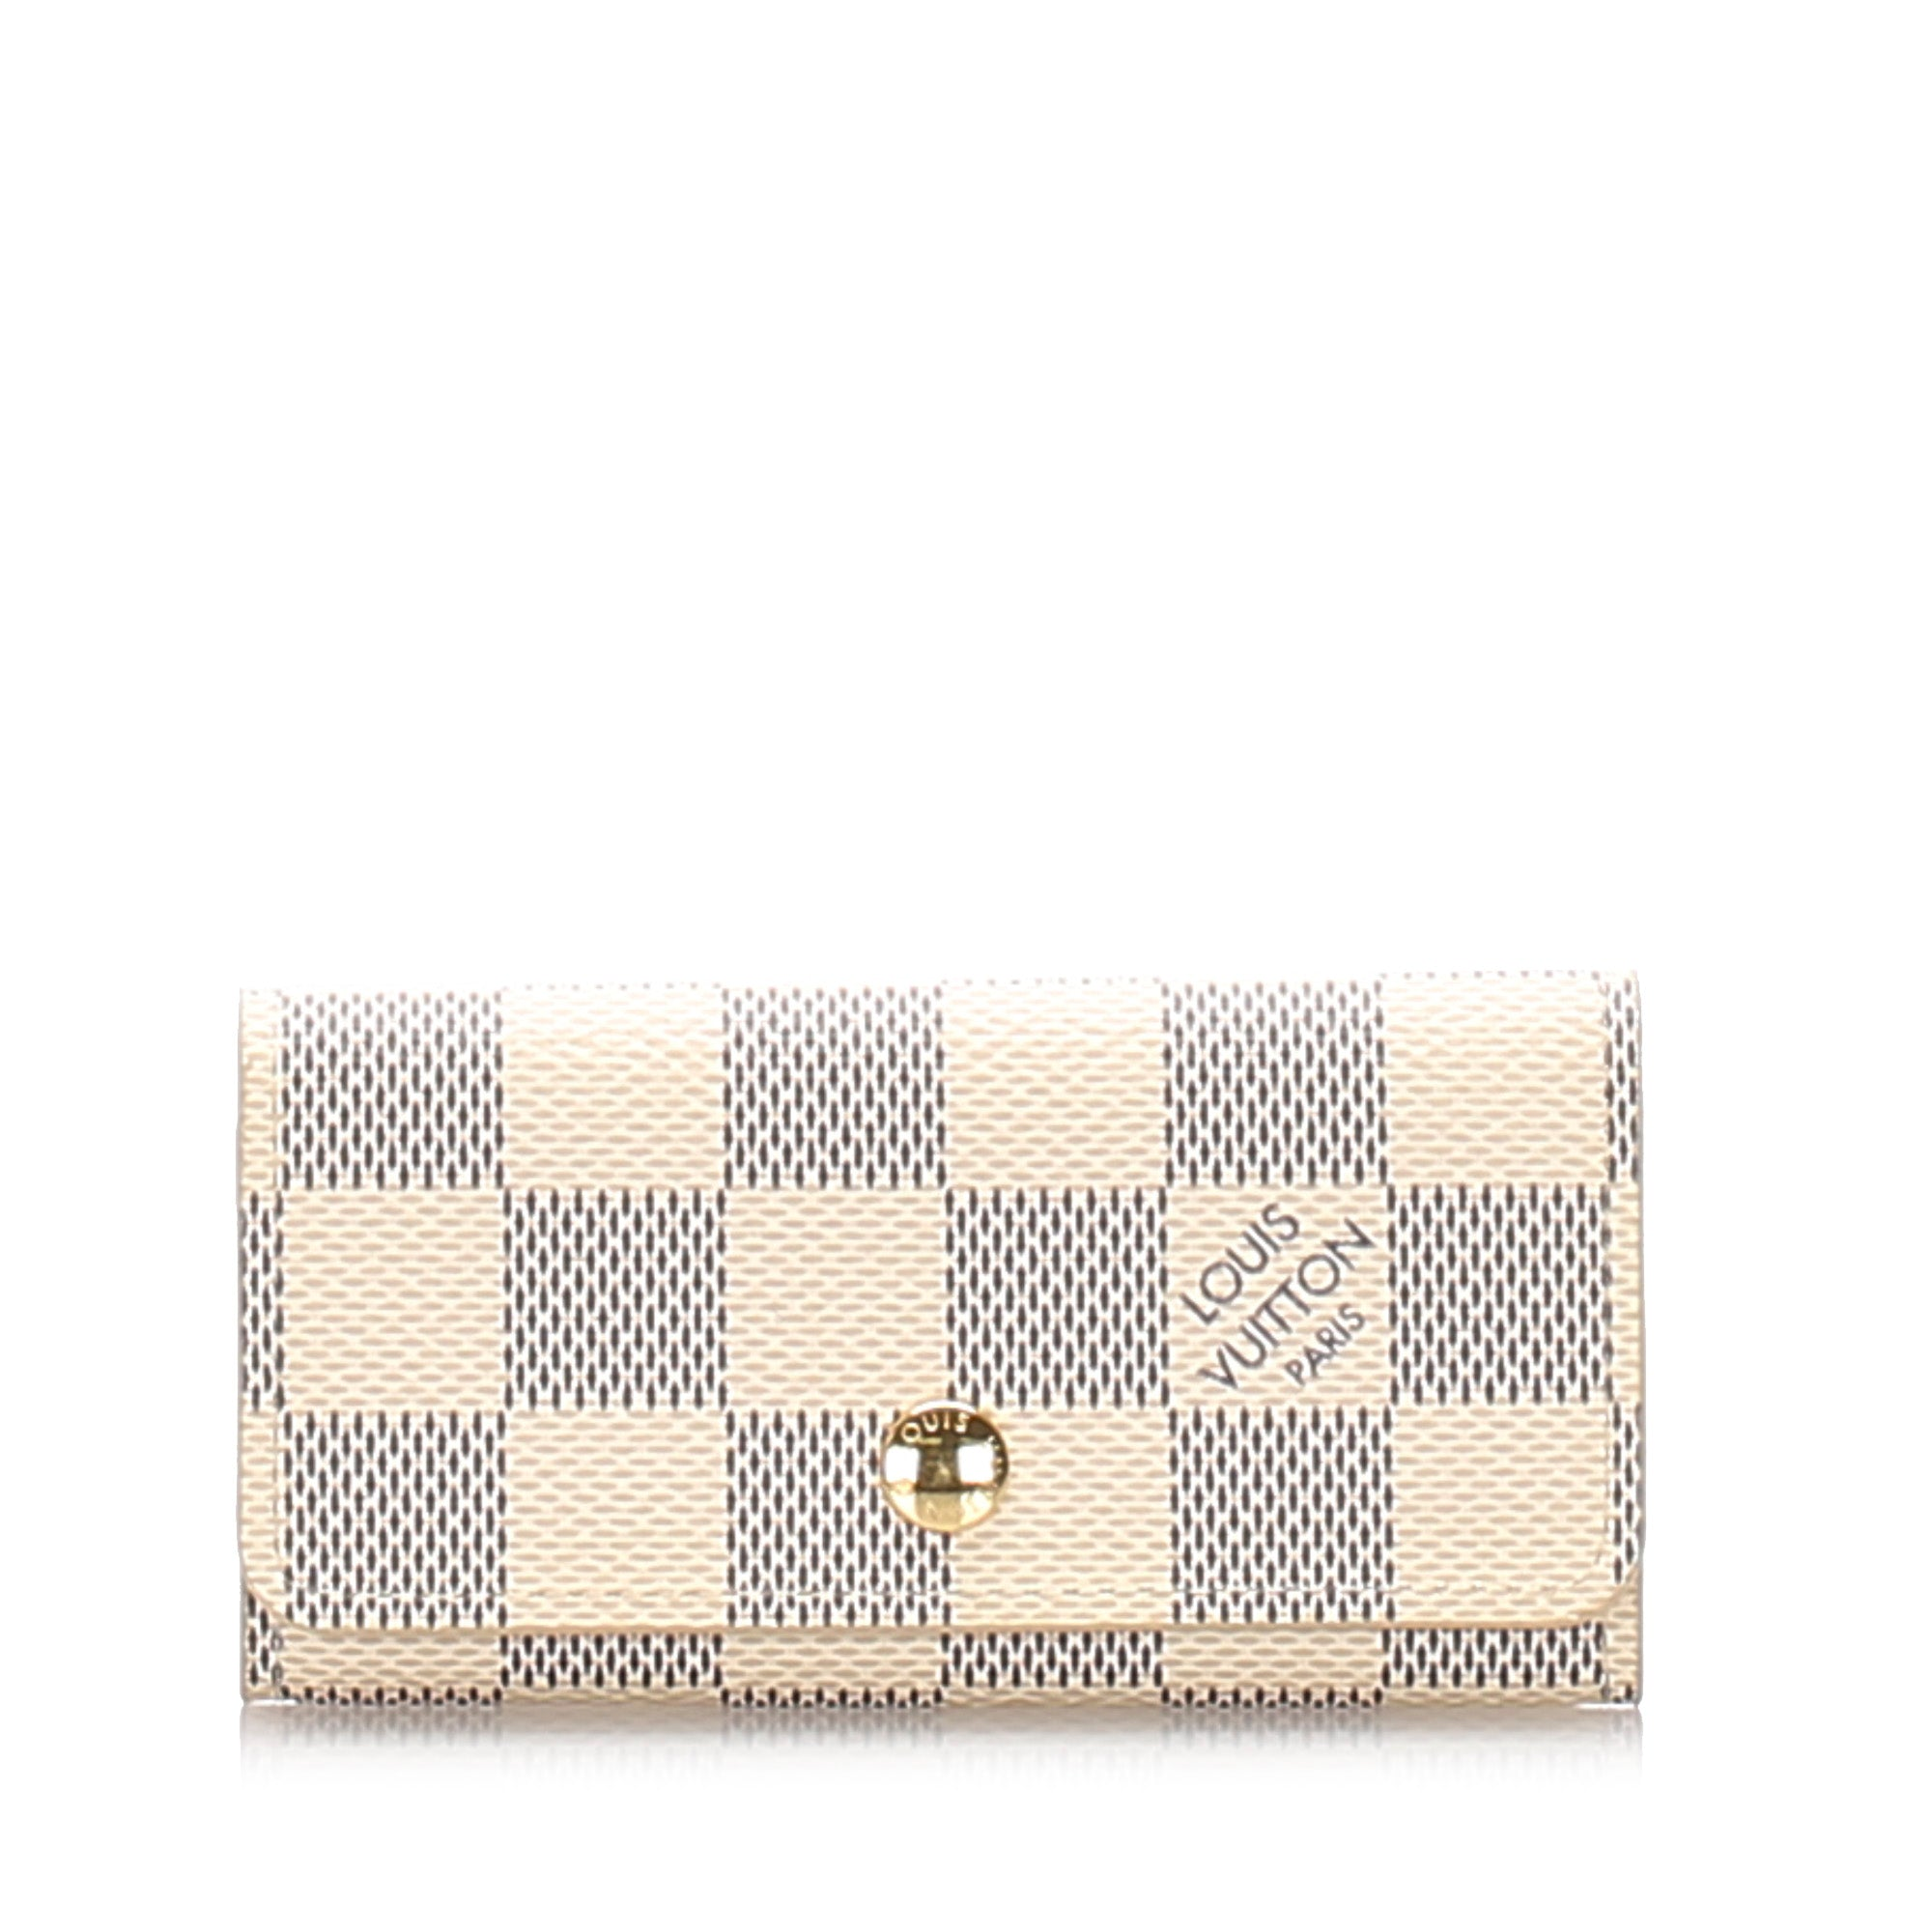 Louis Vuitton Damier Azur 4 Key Holder - Olive Street